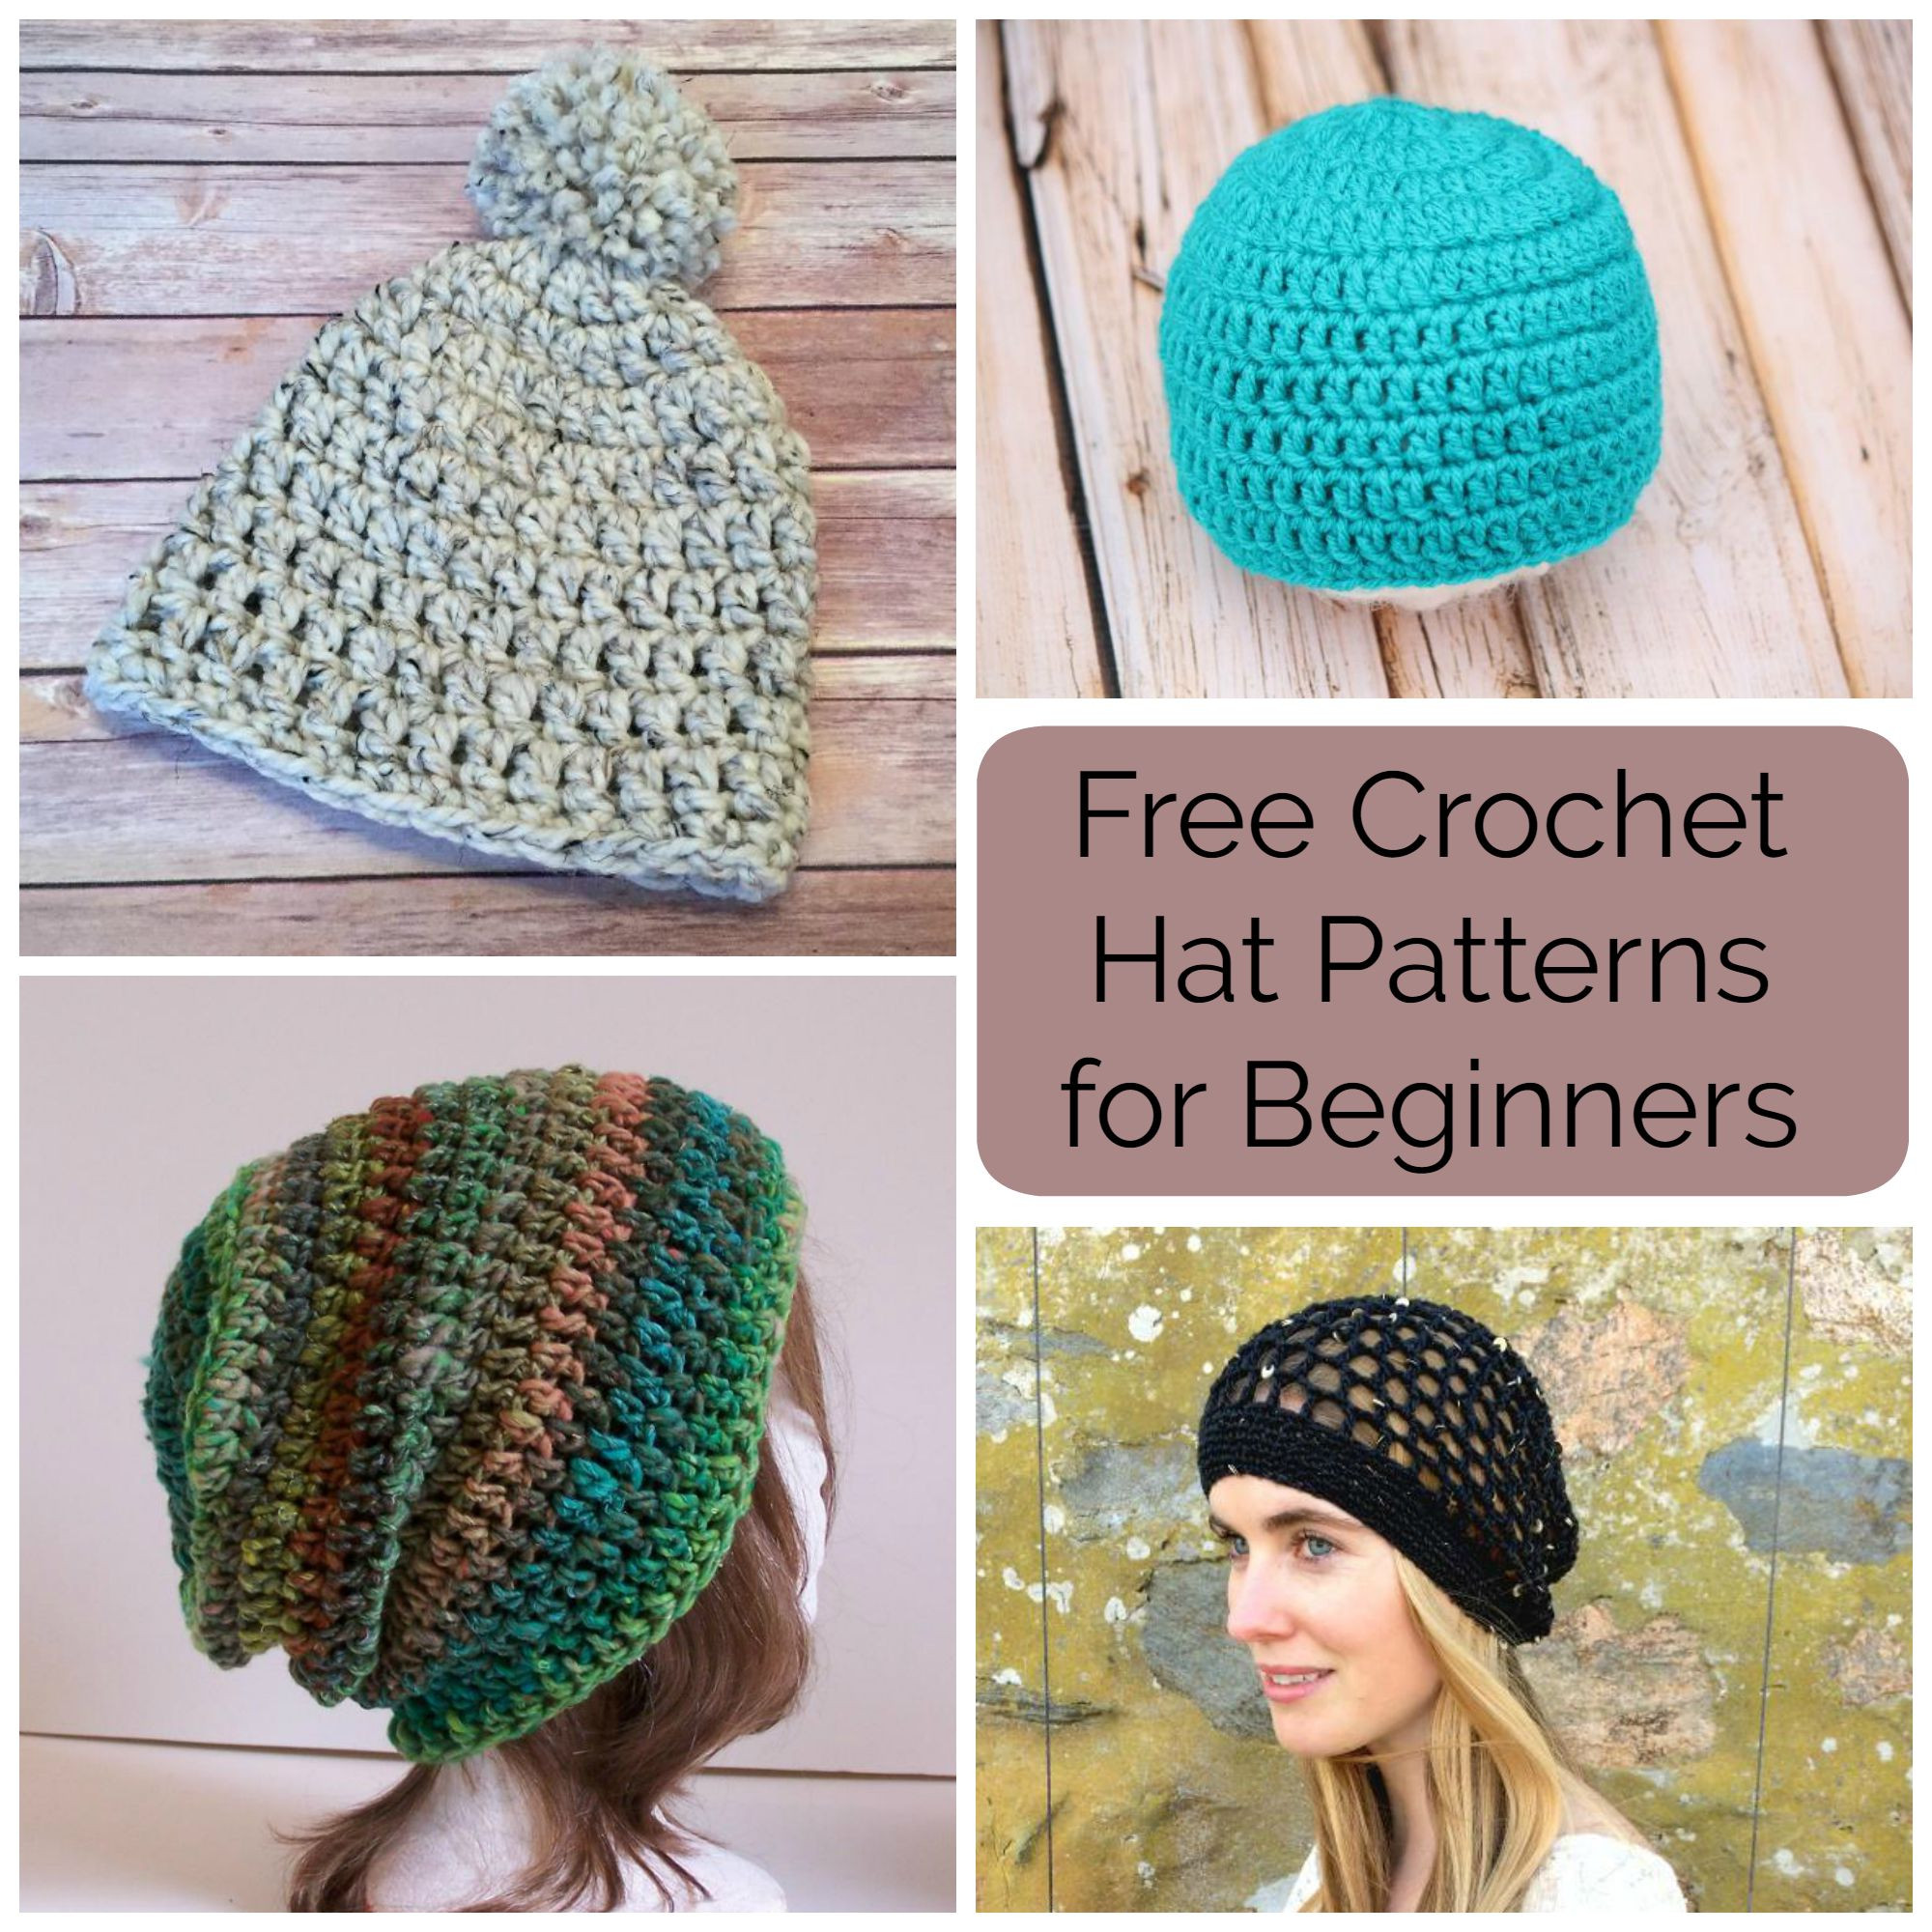 Crochet for Beginners Inspirational 10 Free Crochet Hat Patterns for Beginners Of Perfect 48 Ideas Crochet for Beginners